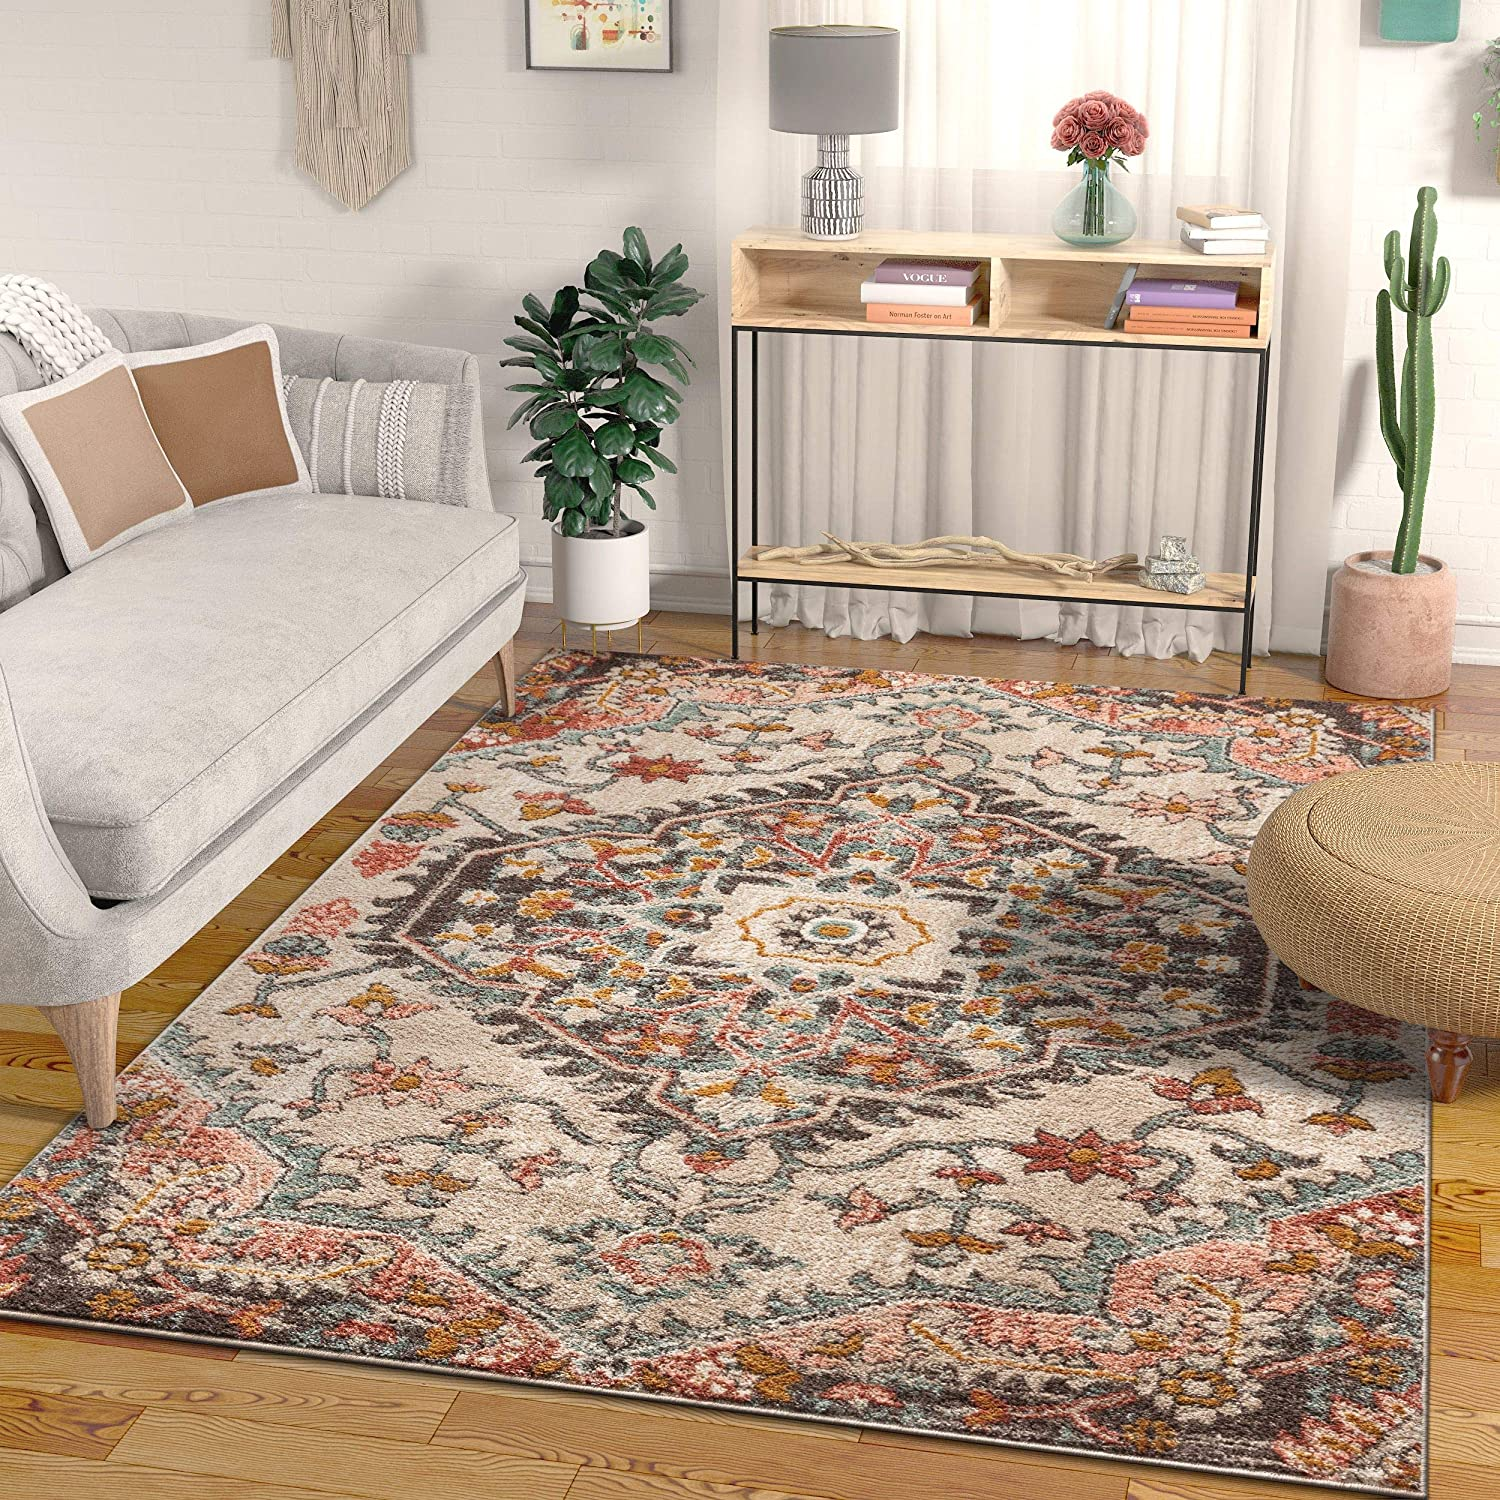 Well Woven Adeline Bohemian Vintage Medallion Soft Blush Multicolor Area Rug 5x7 5 3 X 7 3 Kitchen Dining